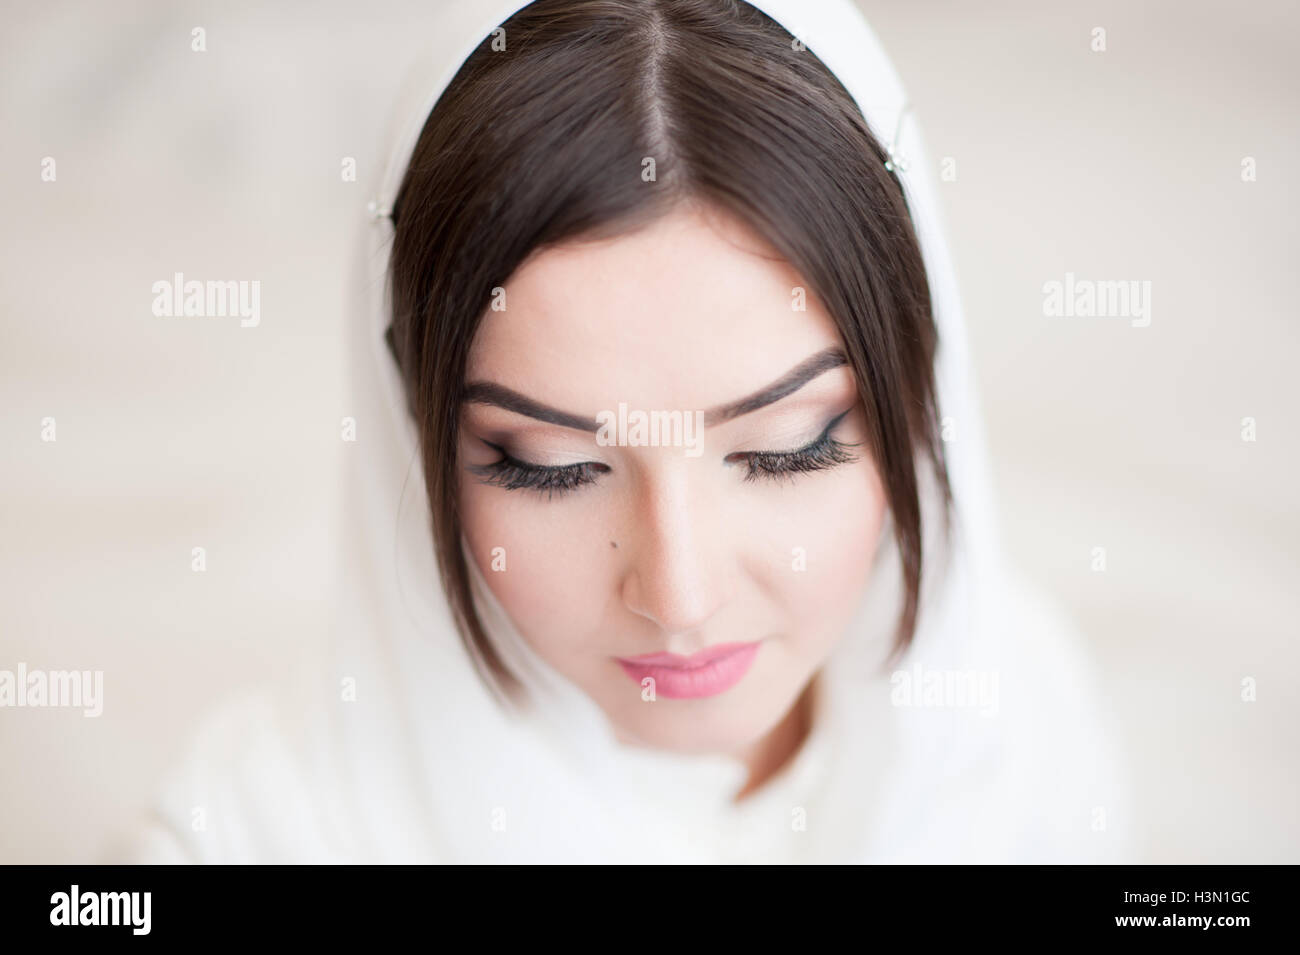 beautiful young woman in a white hijab closed her eyes - Stock Image